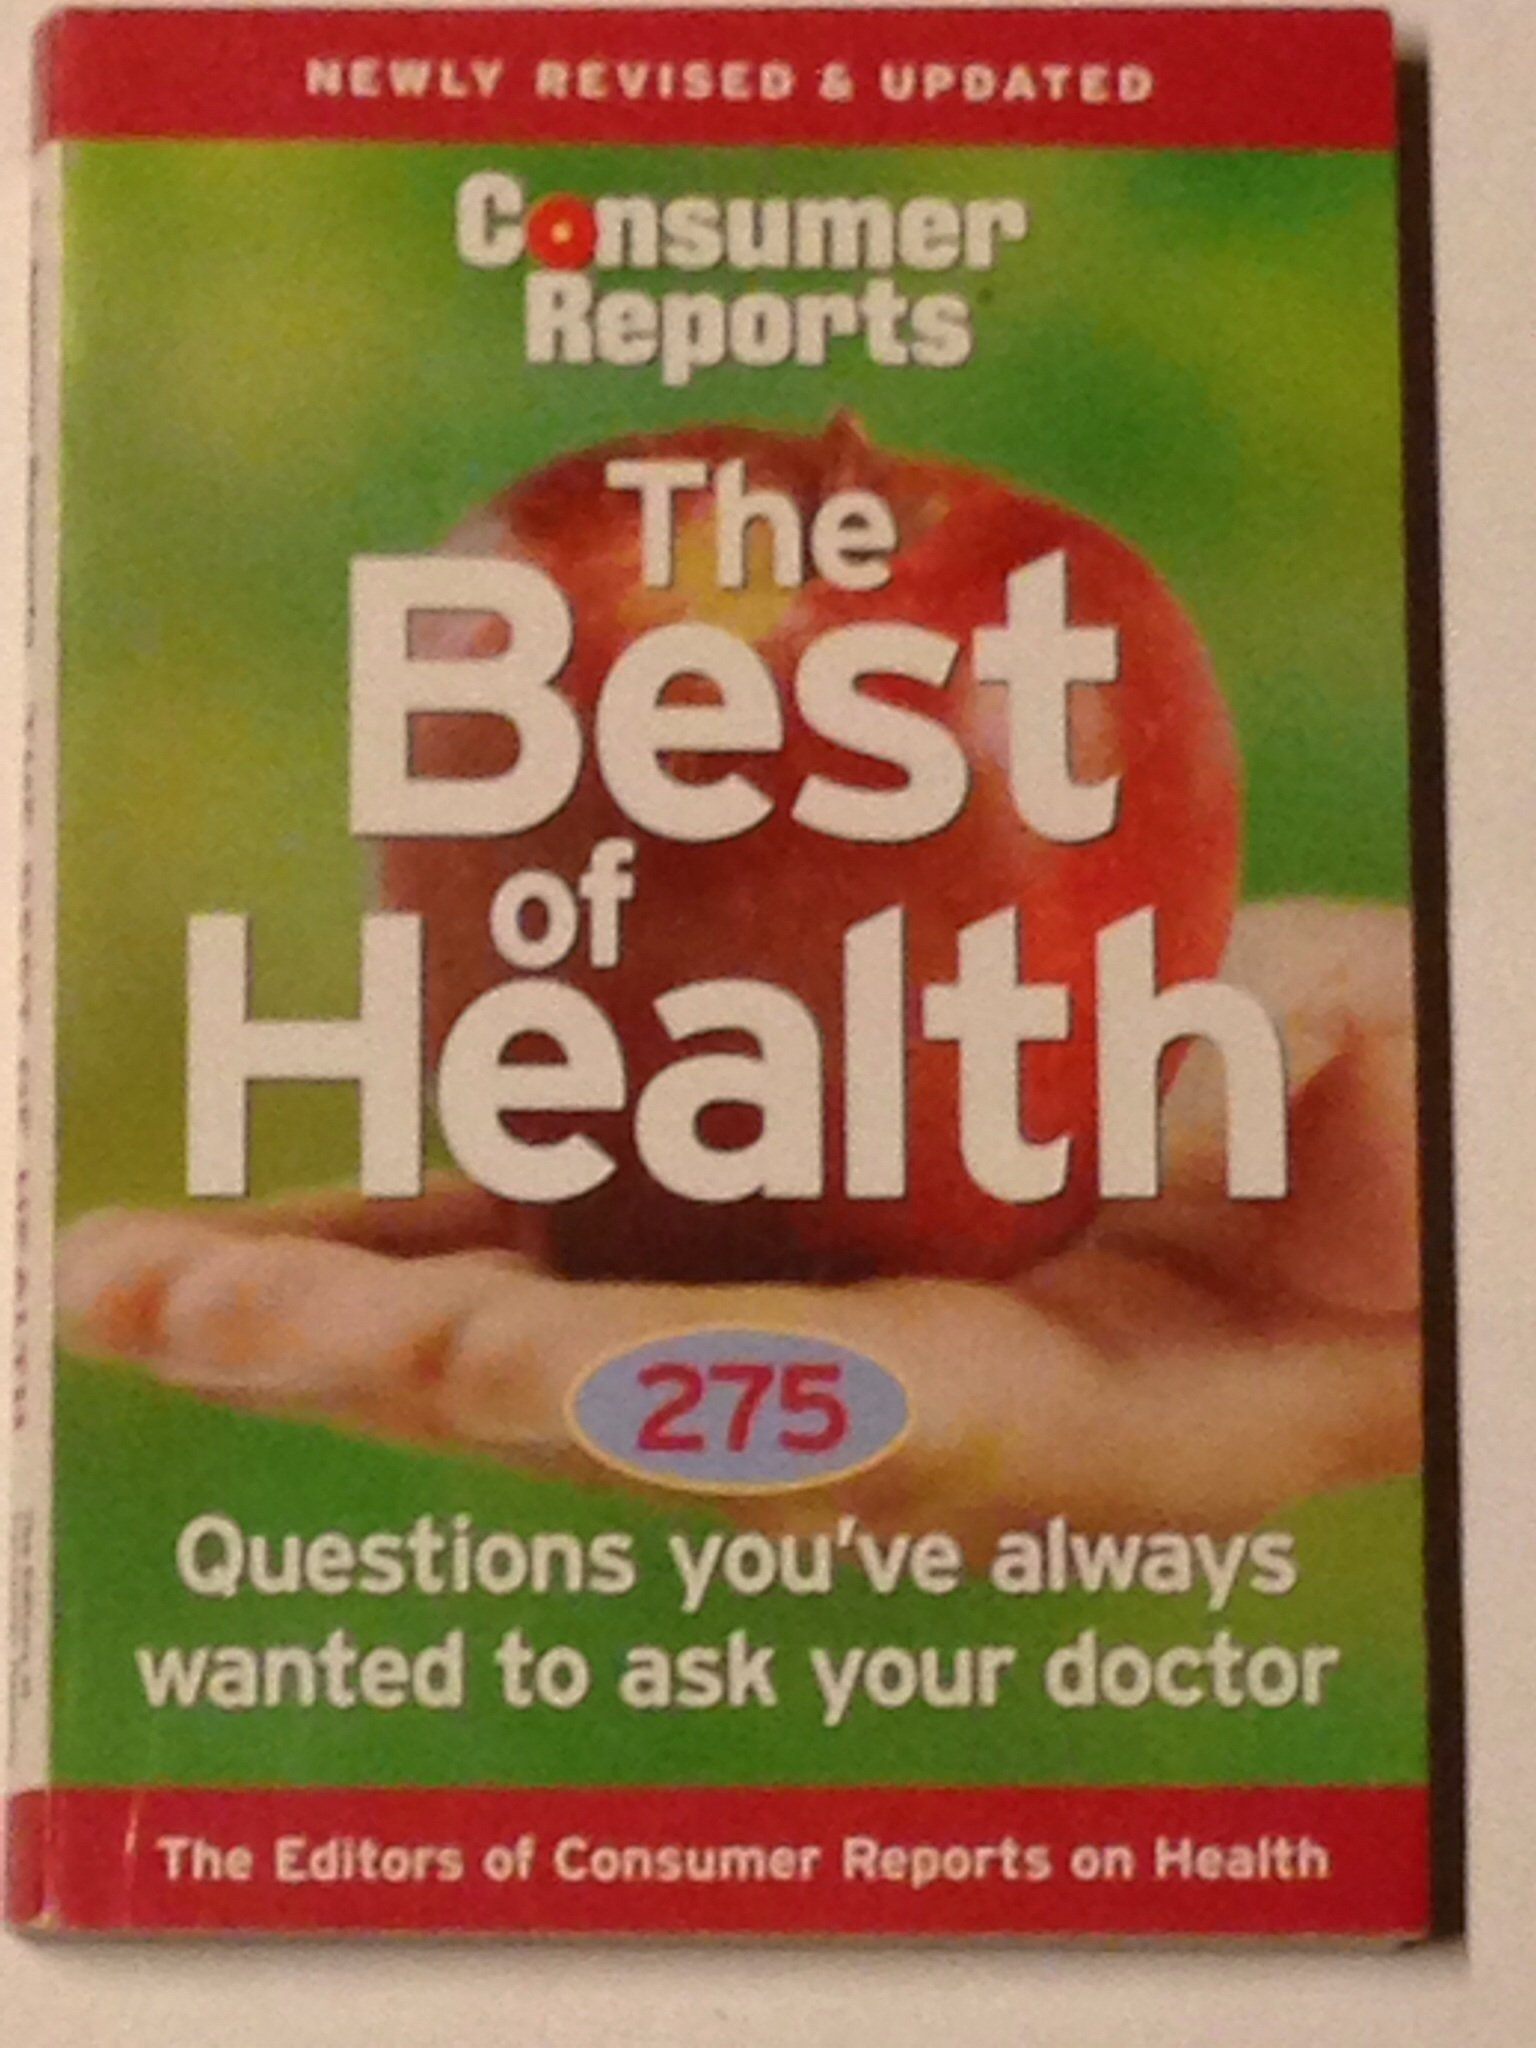 consumer reports the best of health 275 questions you ve always consumer reports the best of health 275 questions you ve always wanted to ask your doctor newly revised and updated consumer s union amazon com books